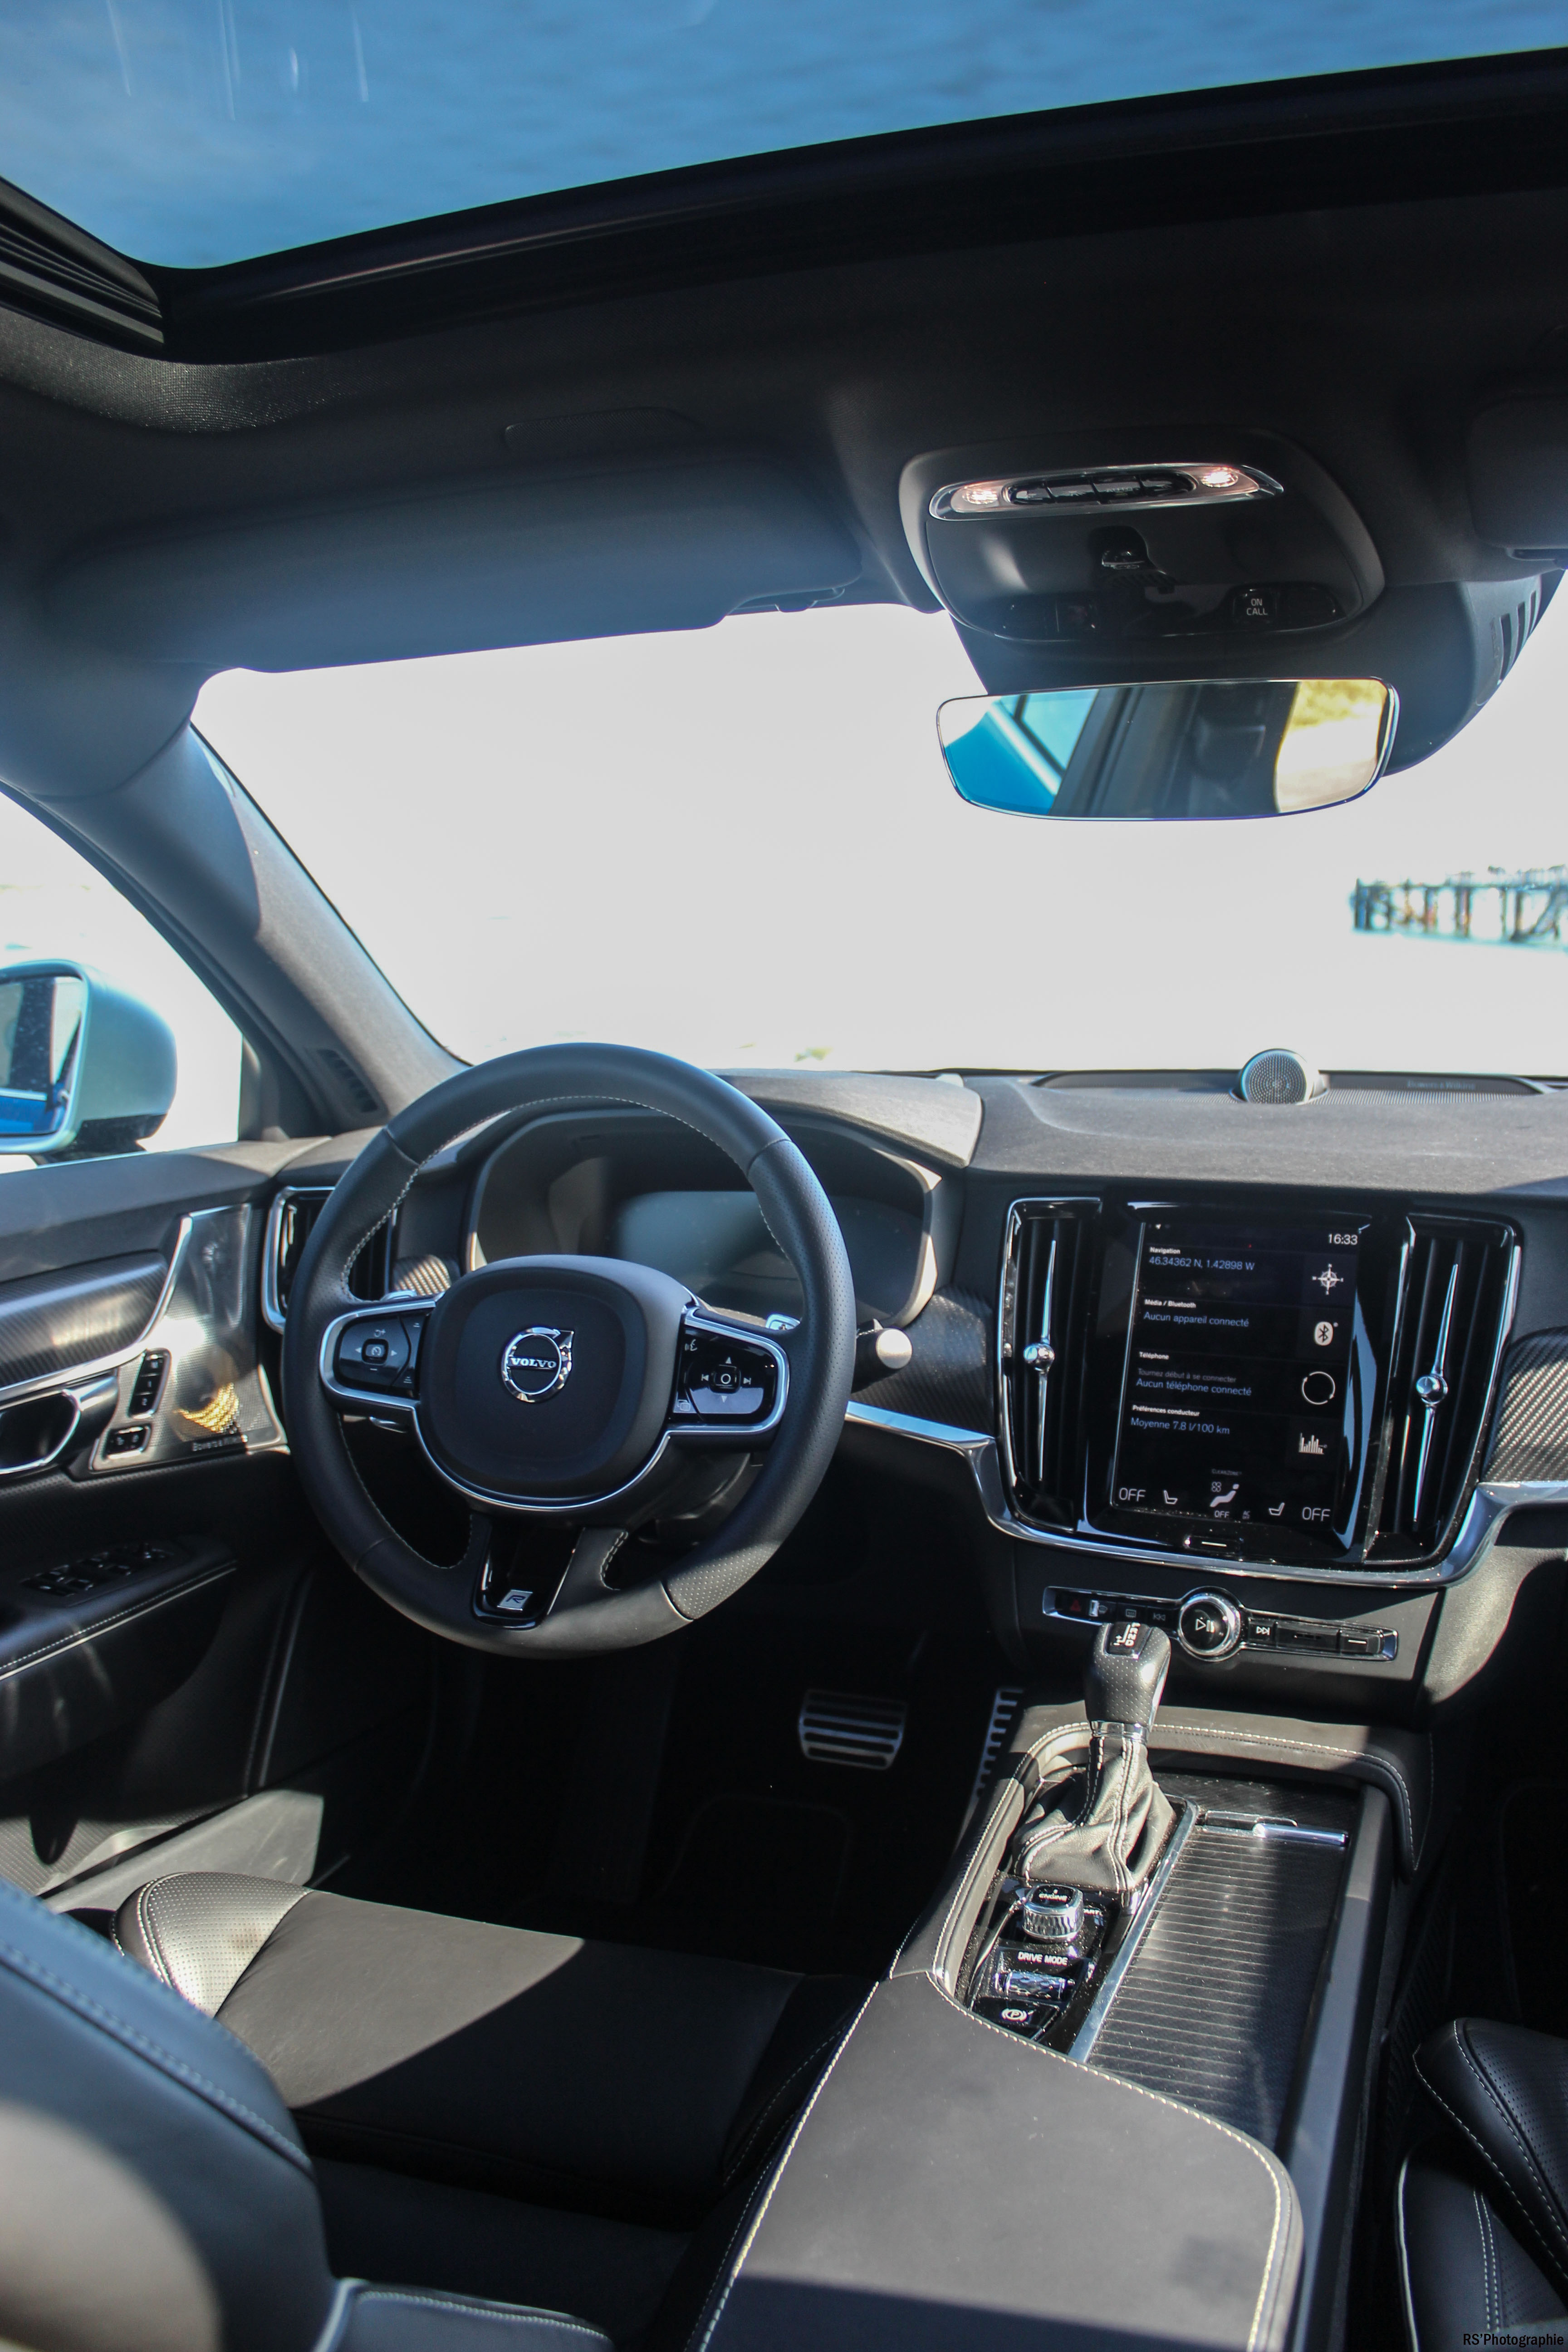 volvos9026-volvo-s90-d3-intérieur-onboard-Arnaud Demasier-RSPhotographie